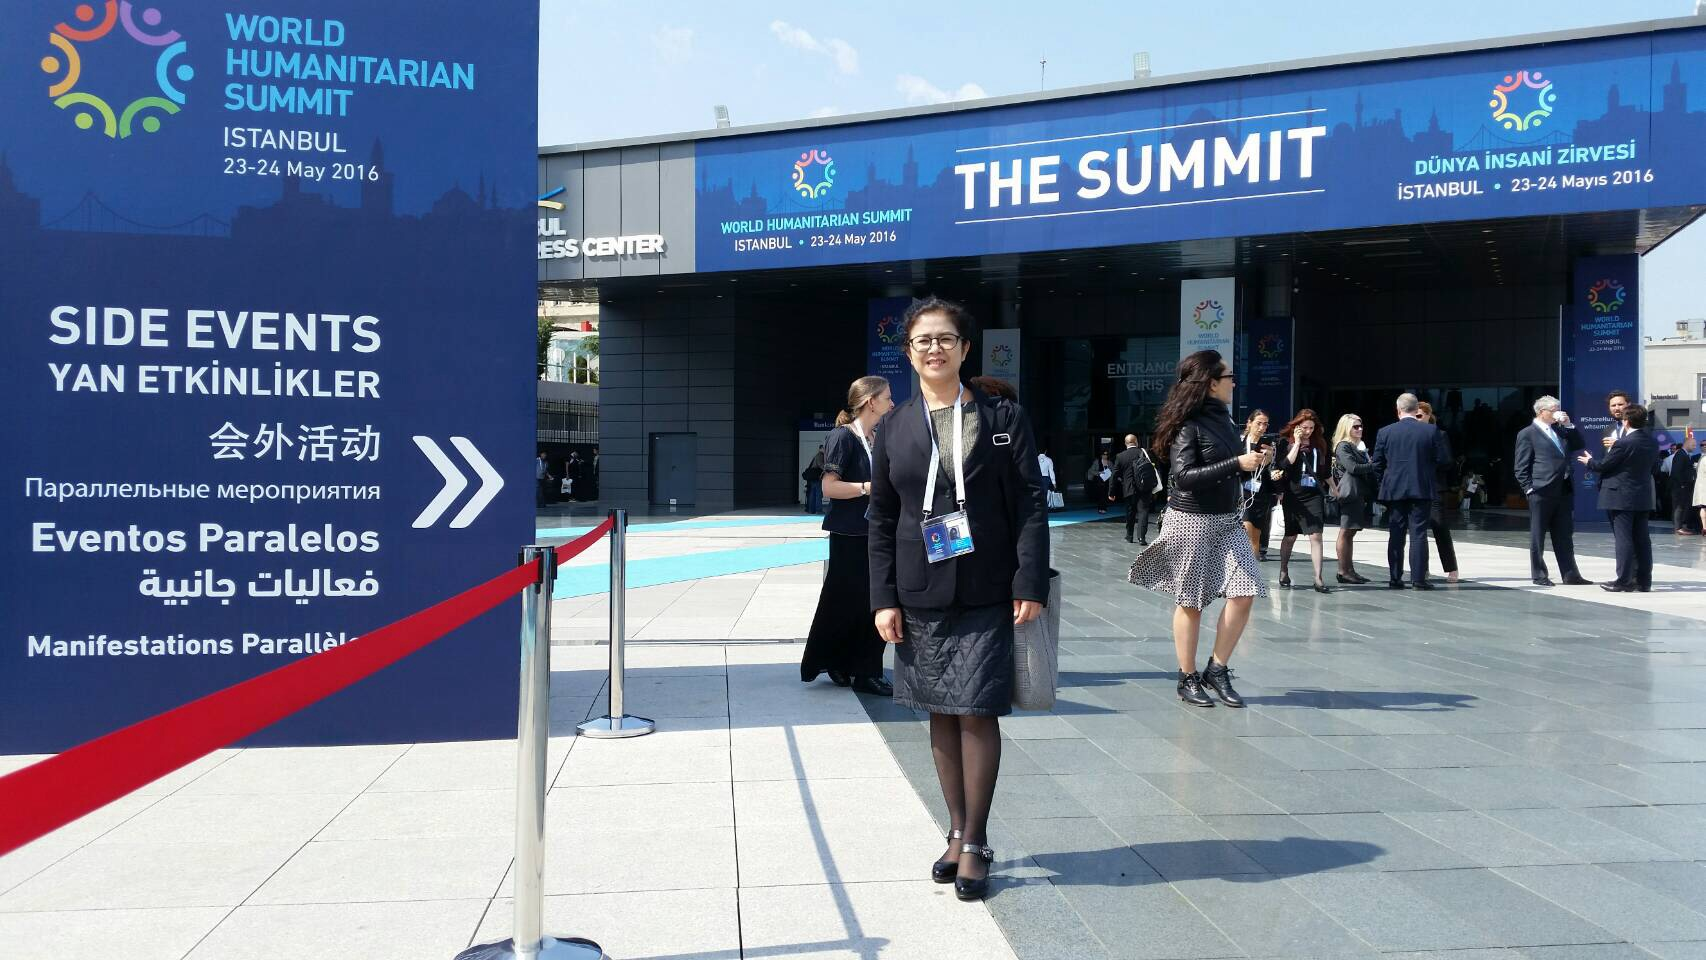 GIDRM Attends the First World Humanitarian Summit in Istanbul